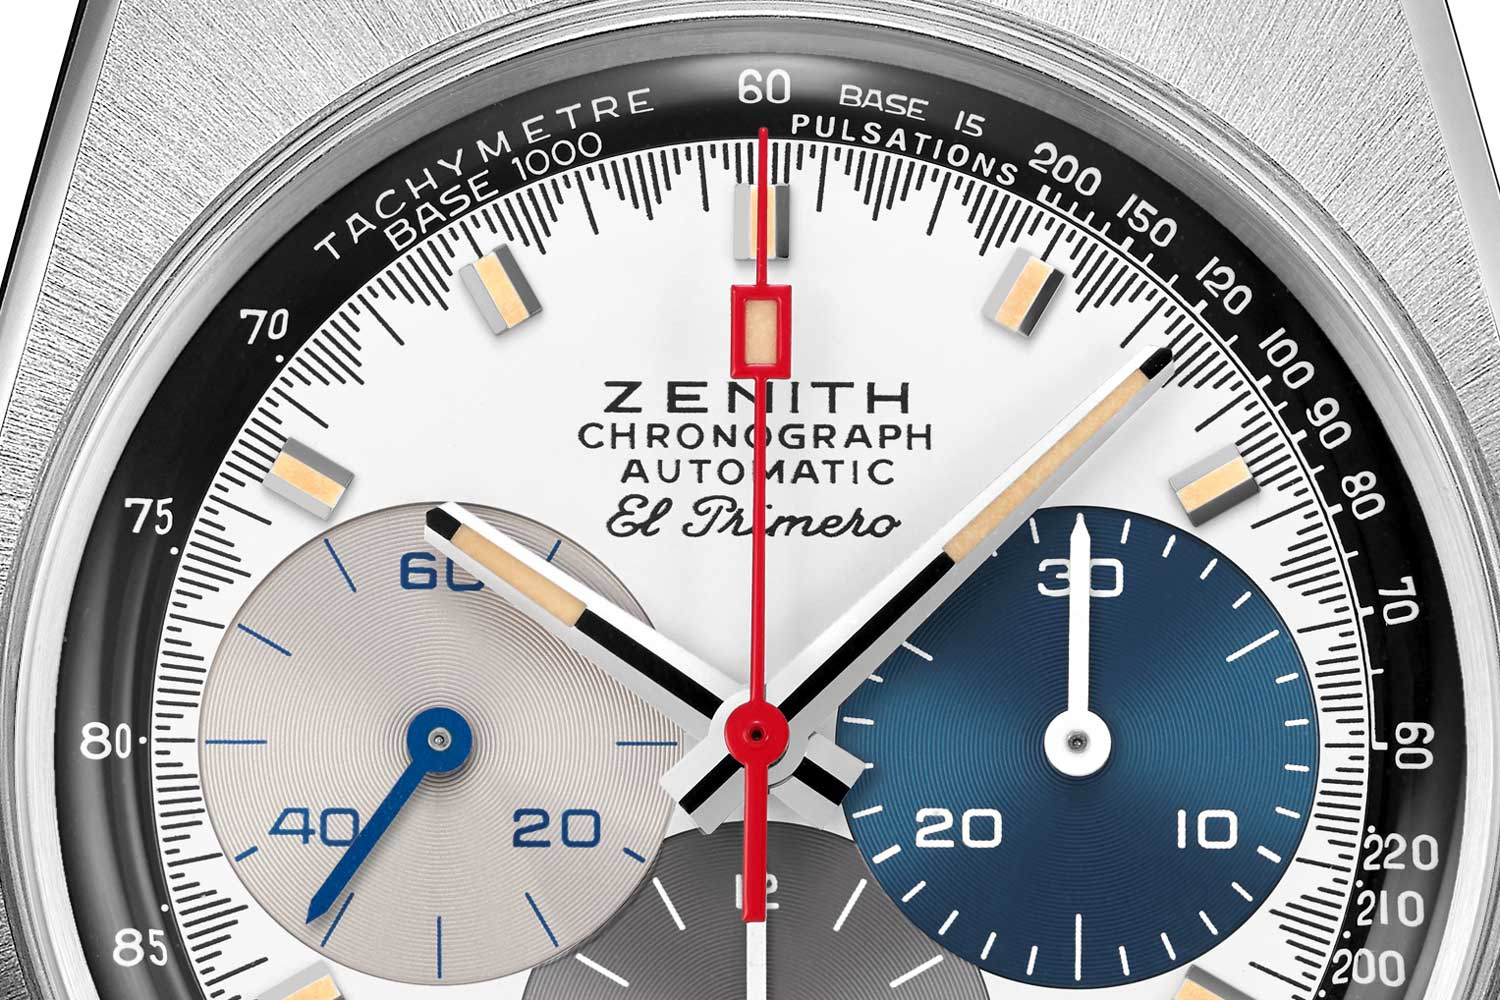 """Chronograph scale markings on the A3817 take on a """"shark tooth"""" form, totalling 300 white lines; along with the space between each marking, there are 600 divisions on the chronograph scale, which is line with the El Primero chronograph's ability to measure time to 1/10th of a second; the scale itself makes up for an unusual combination of a pulsation and tachymeter scale"""